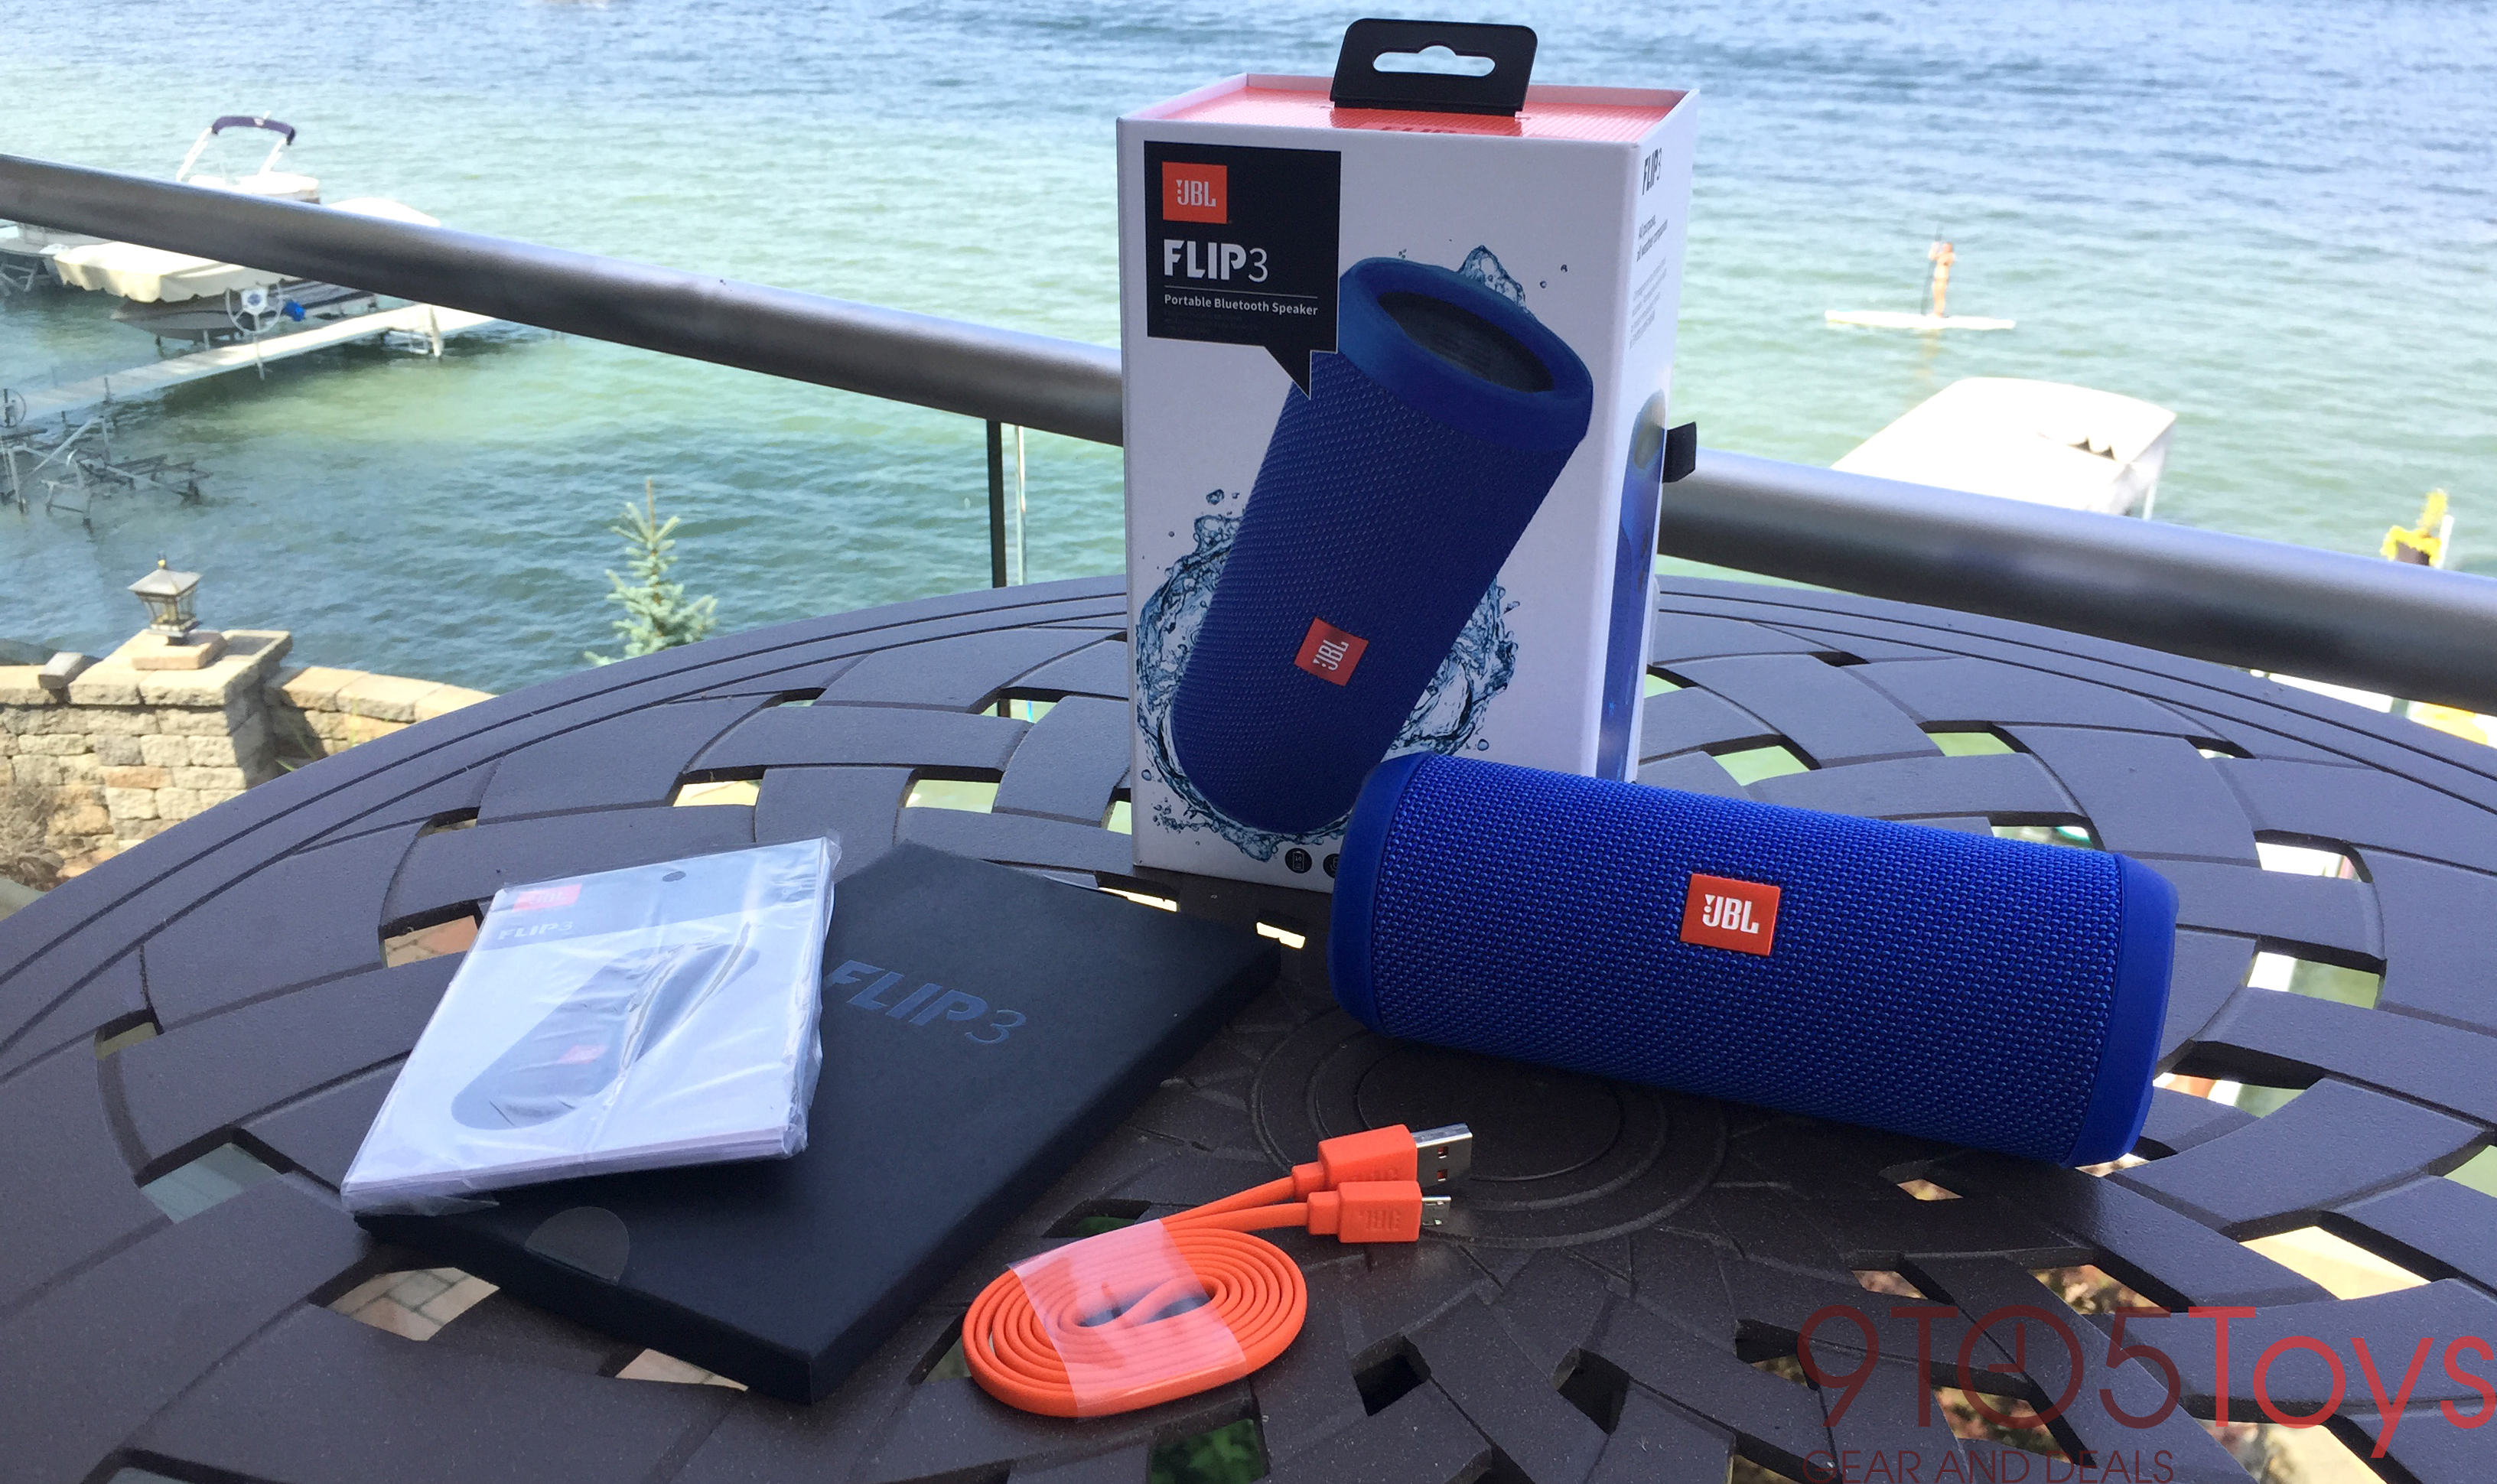 jbl-flip-3-contents-9to5toys